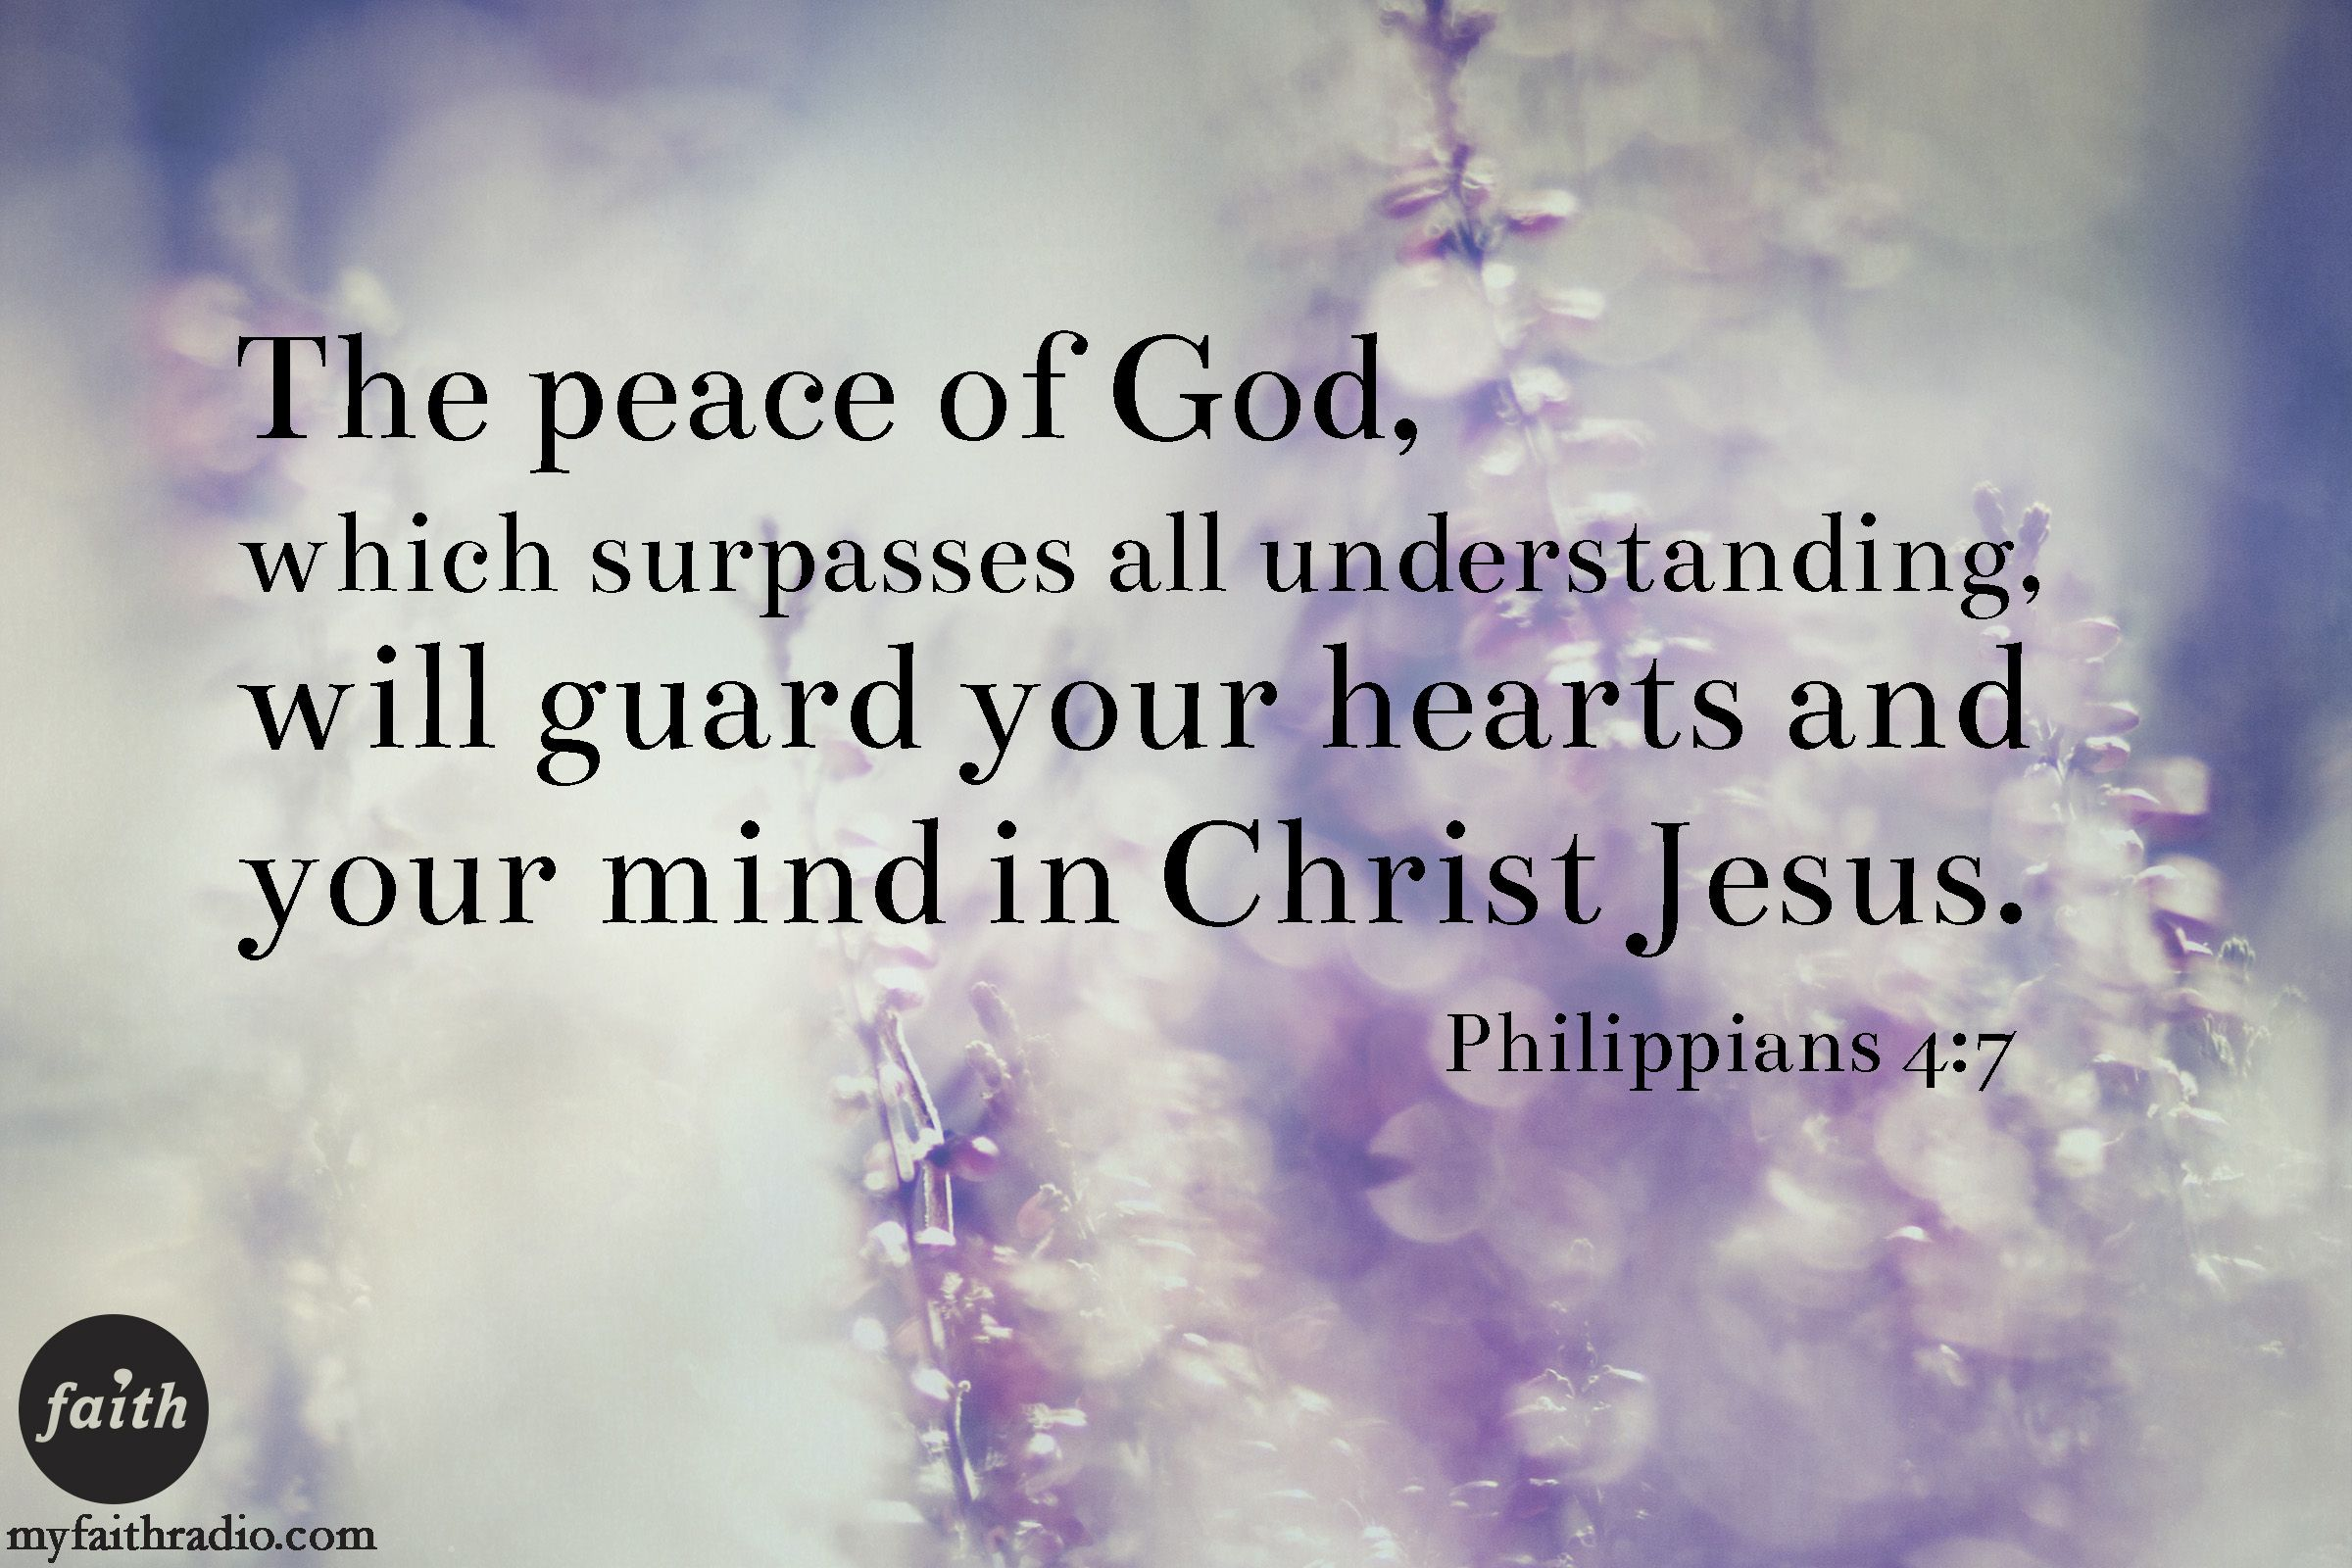 Philippians 4:7...We pray that you peace that surpasses understanding today.